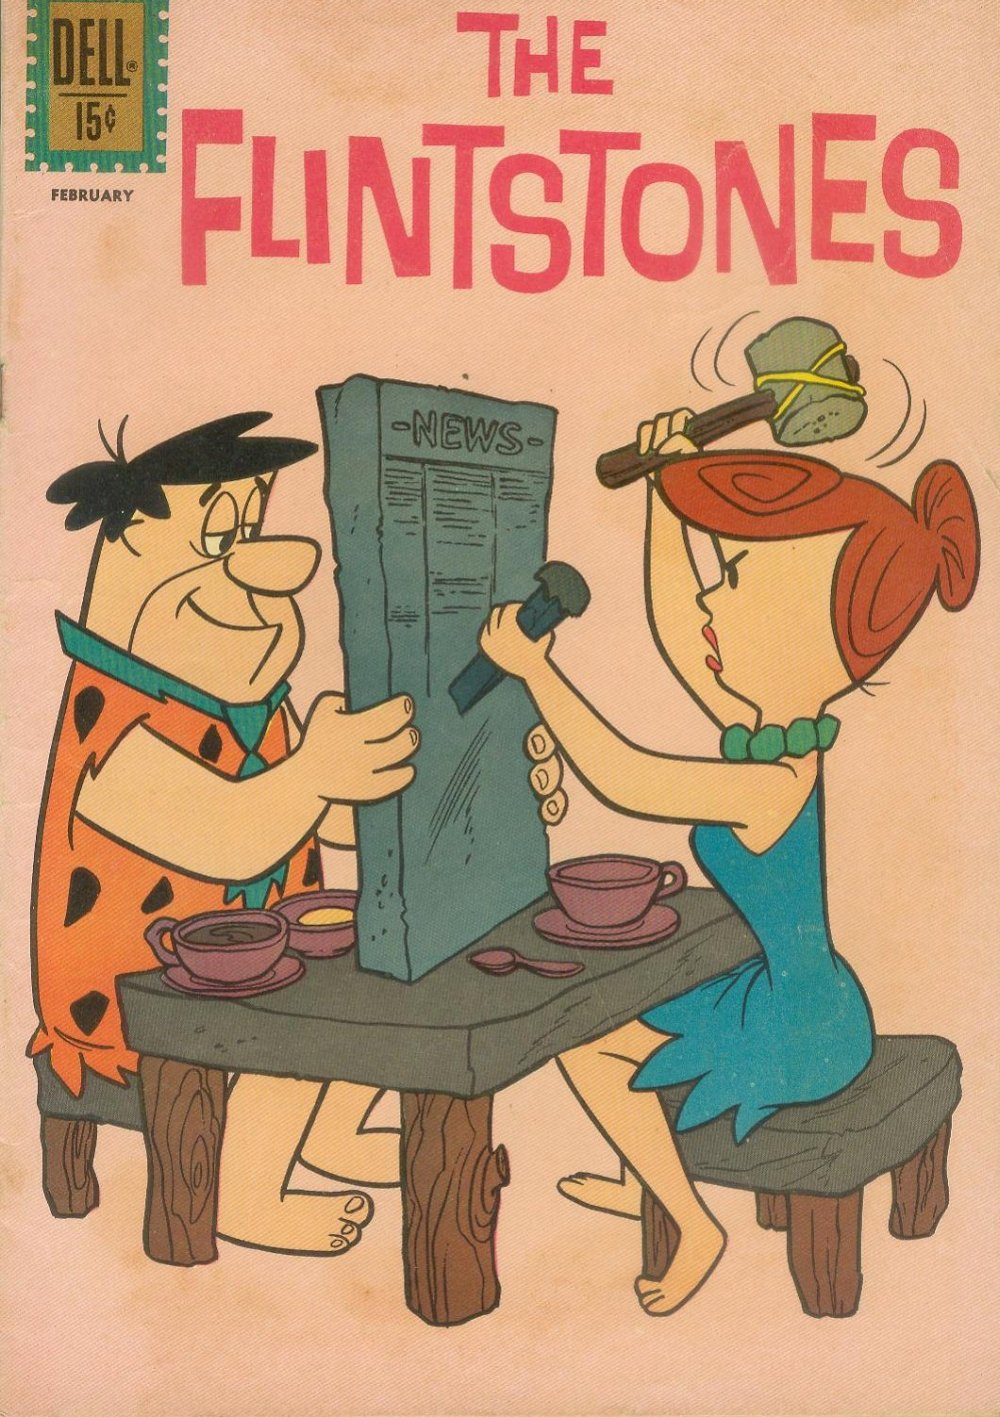 Flintstones, The [Dell] V1 0003.jpg